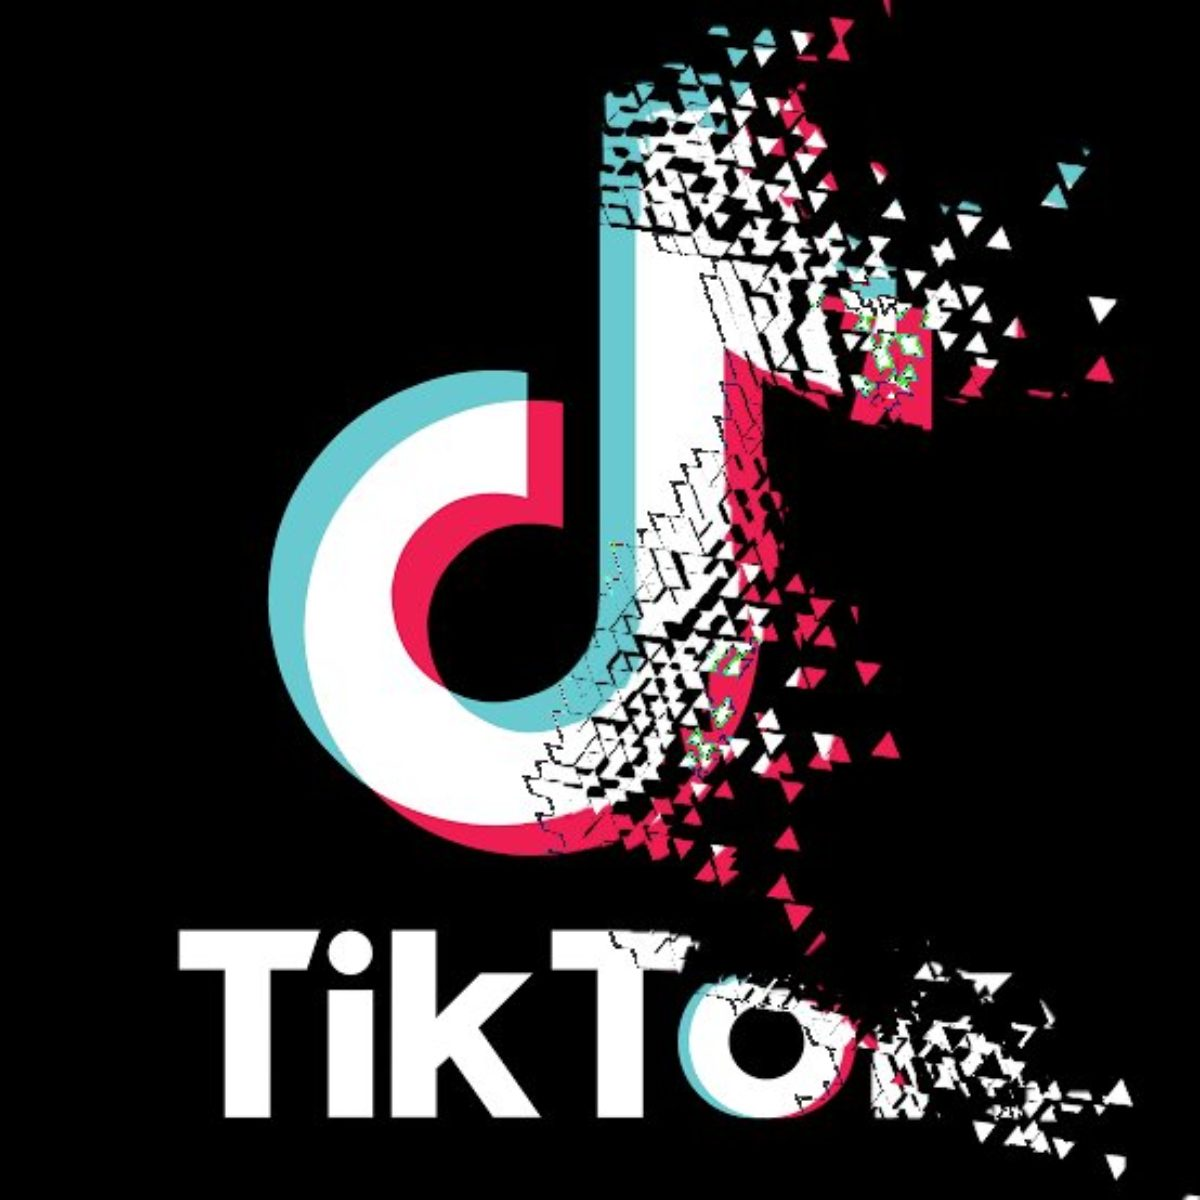 59 Chinese Apps Banned Including Tiktok Shein Government Ban On